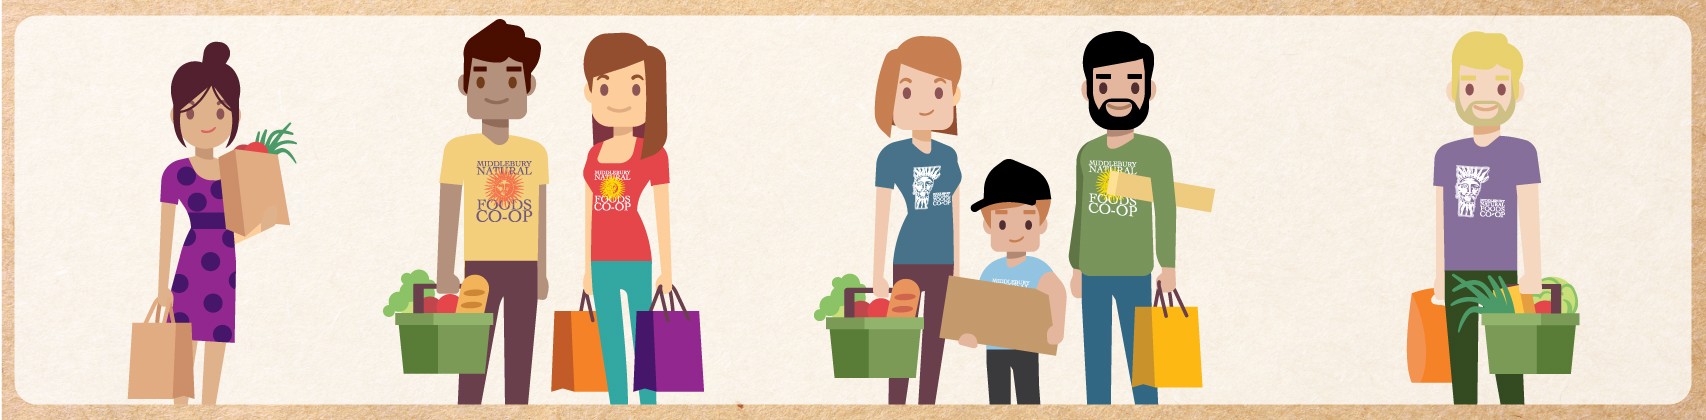 Covid_Shoppers_Web-Banner